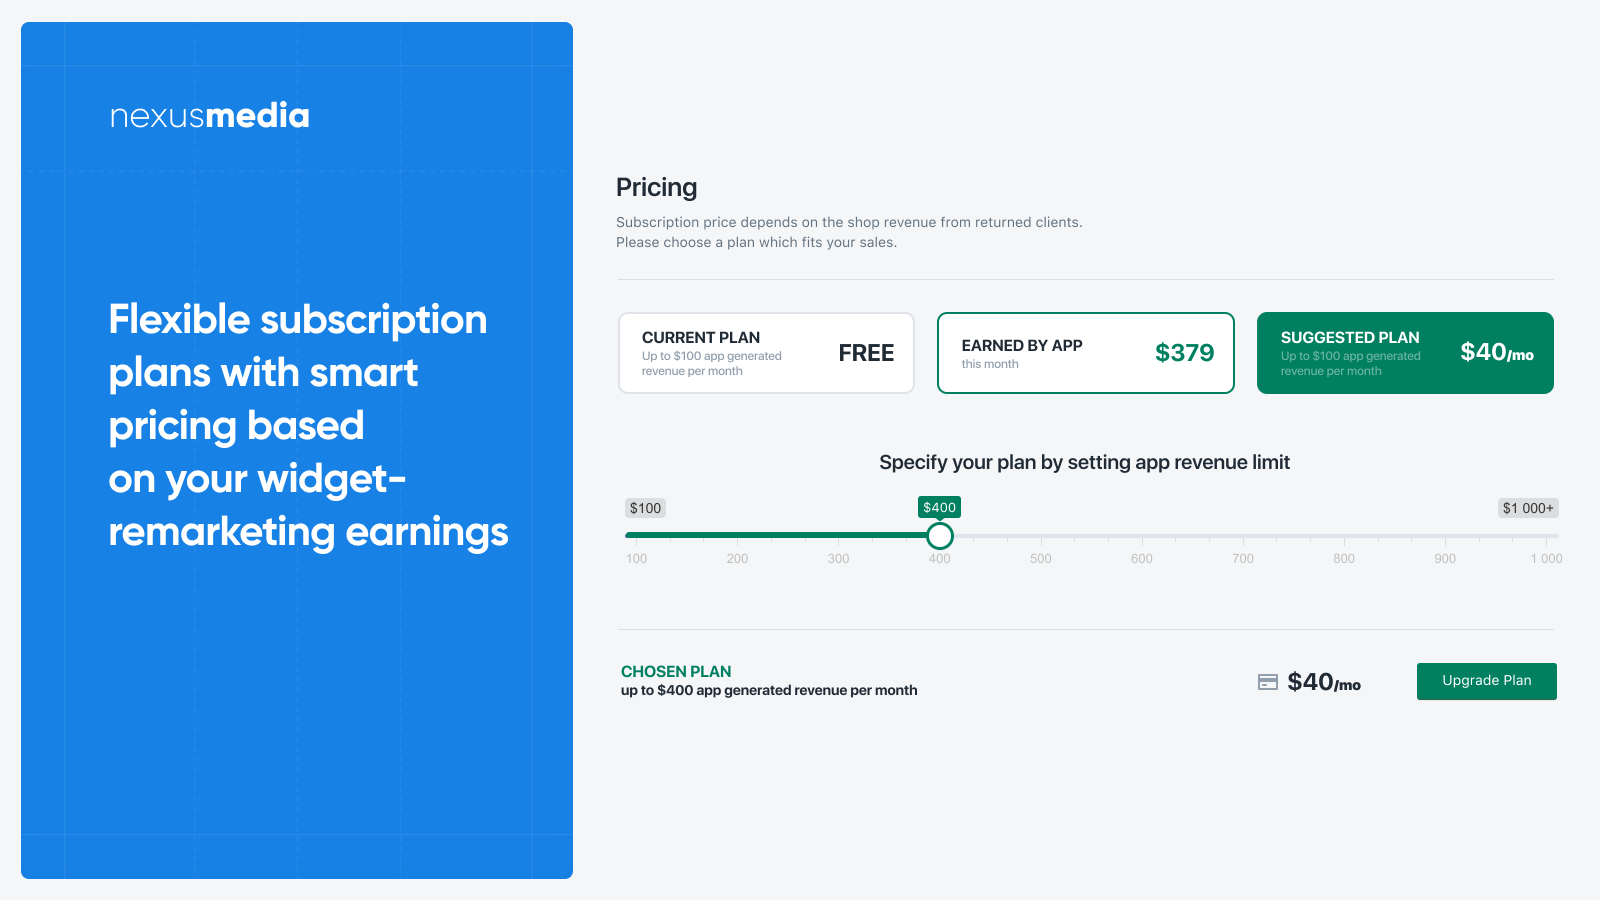 Flexible subscription plans, smart pricing based on your earning